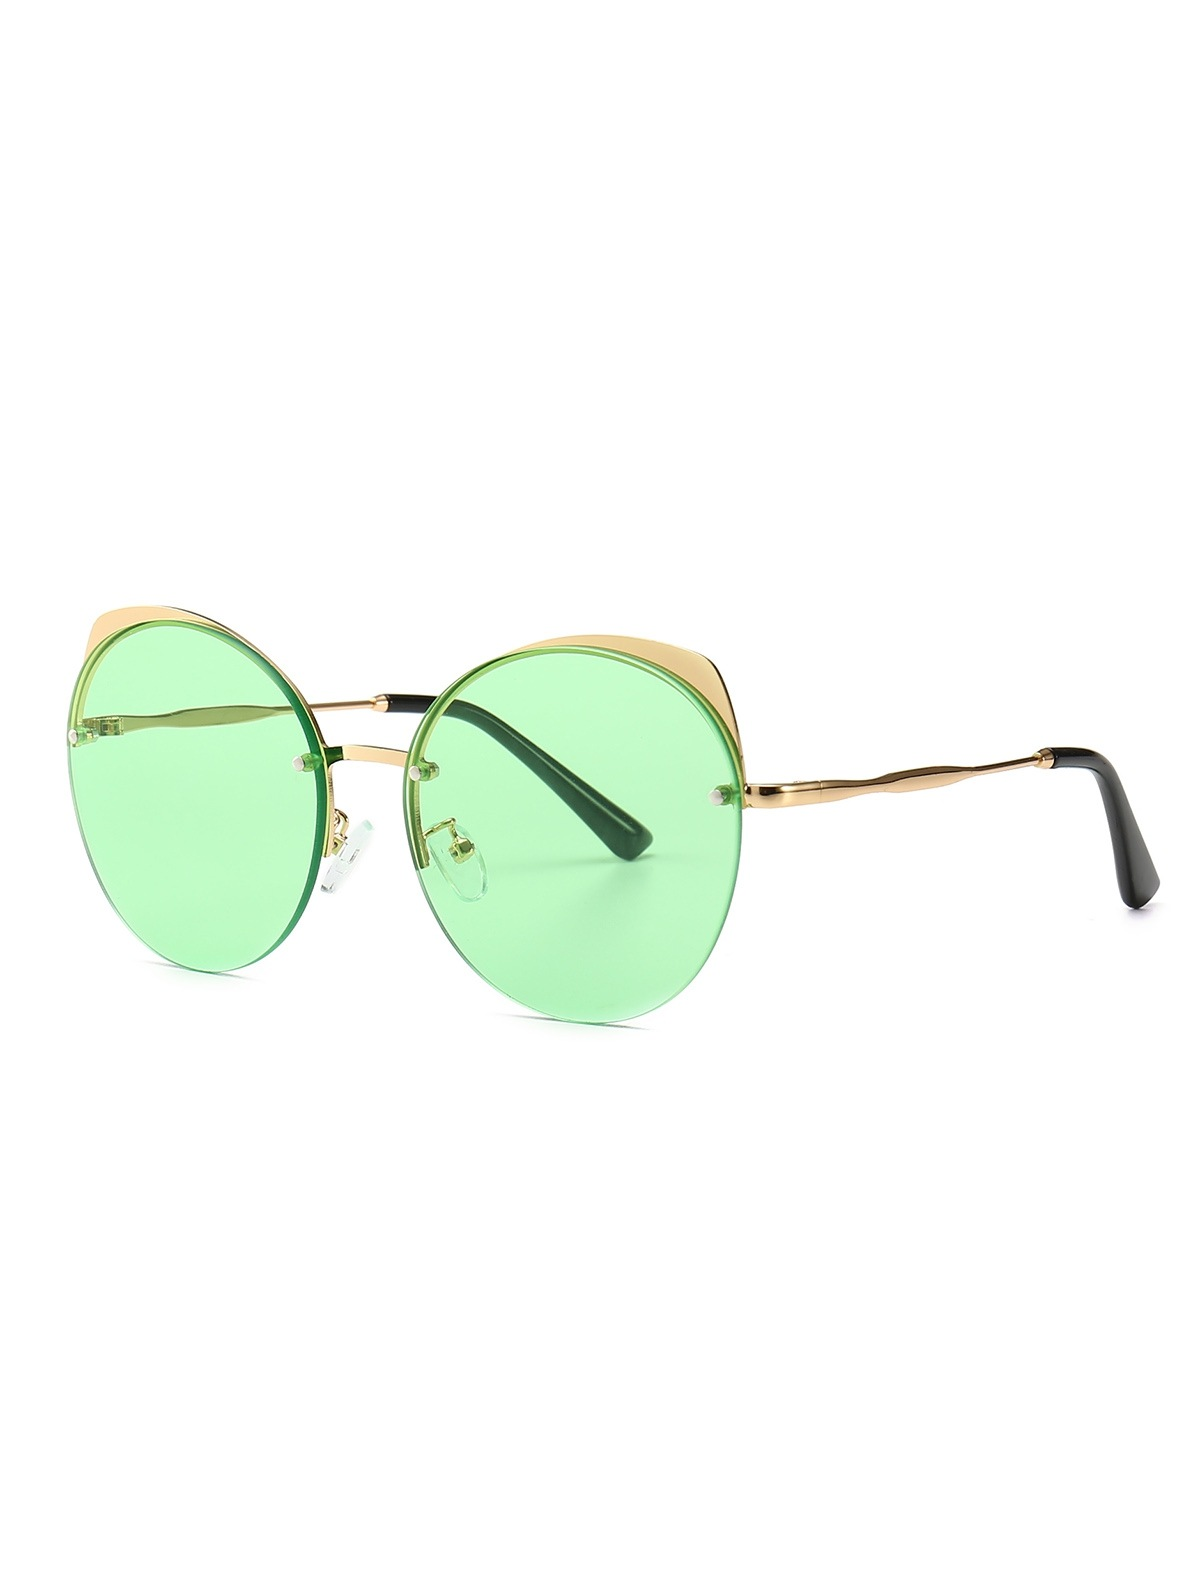 Semi-rimless Catty Eye Round Sunglasses